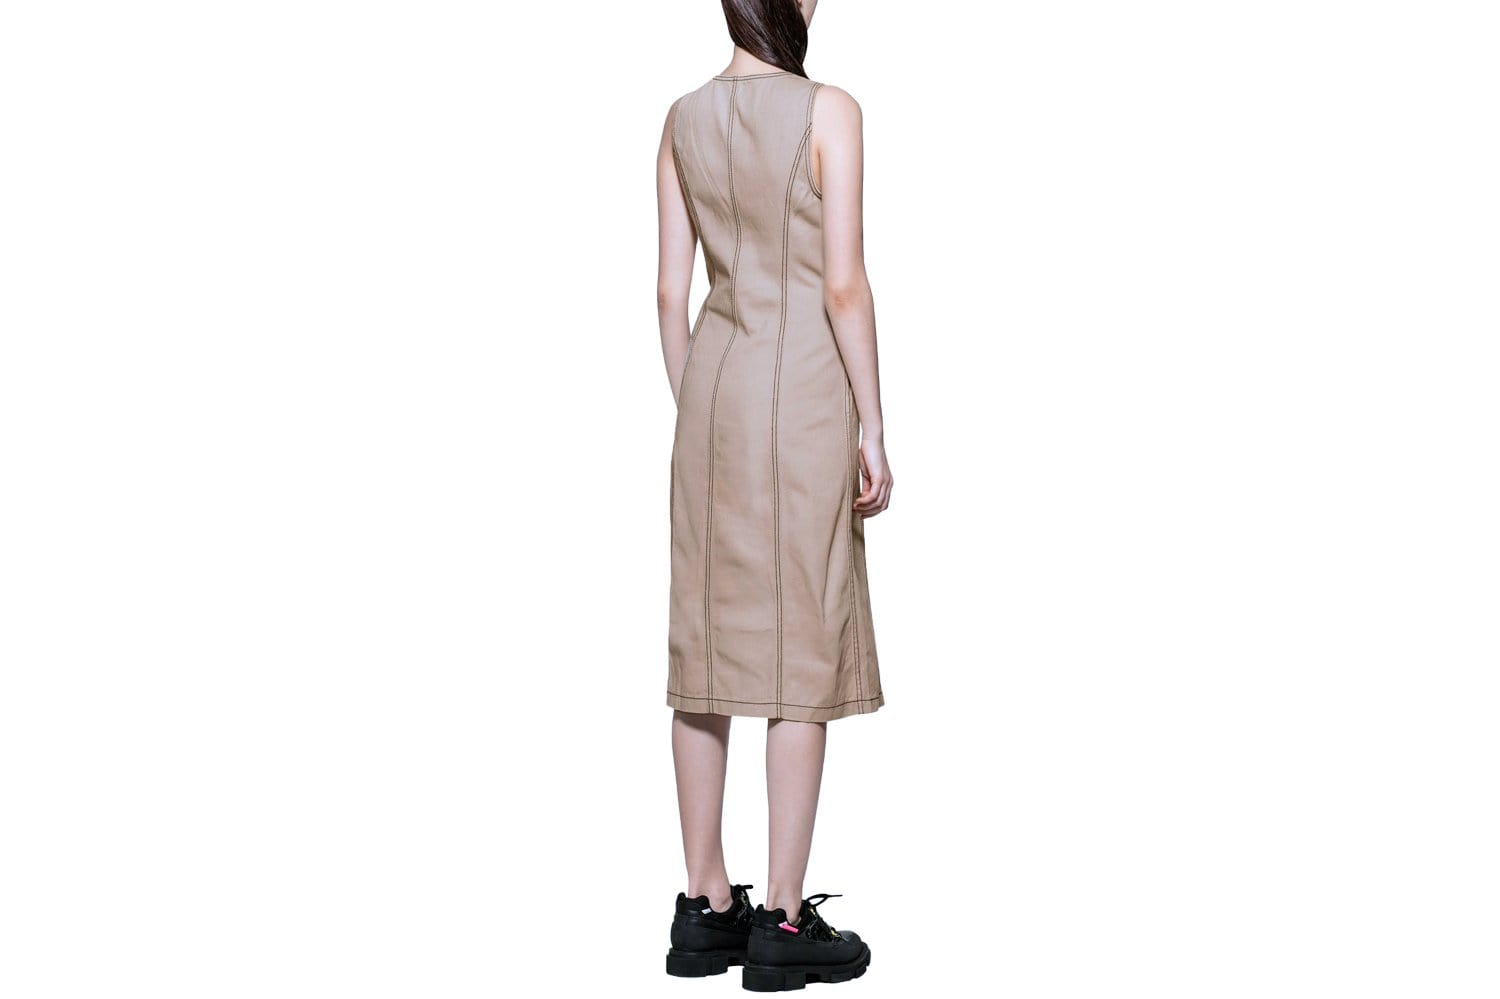 Bailey contrast stitch dress in sand/tan by Stussy.